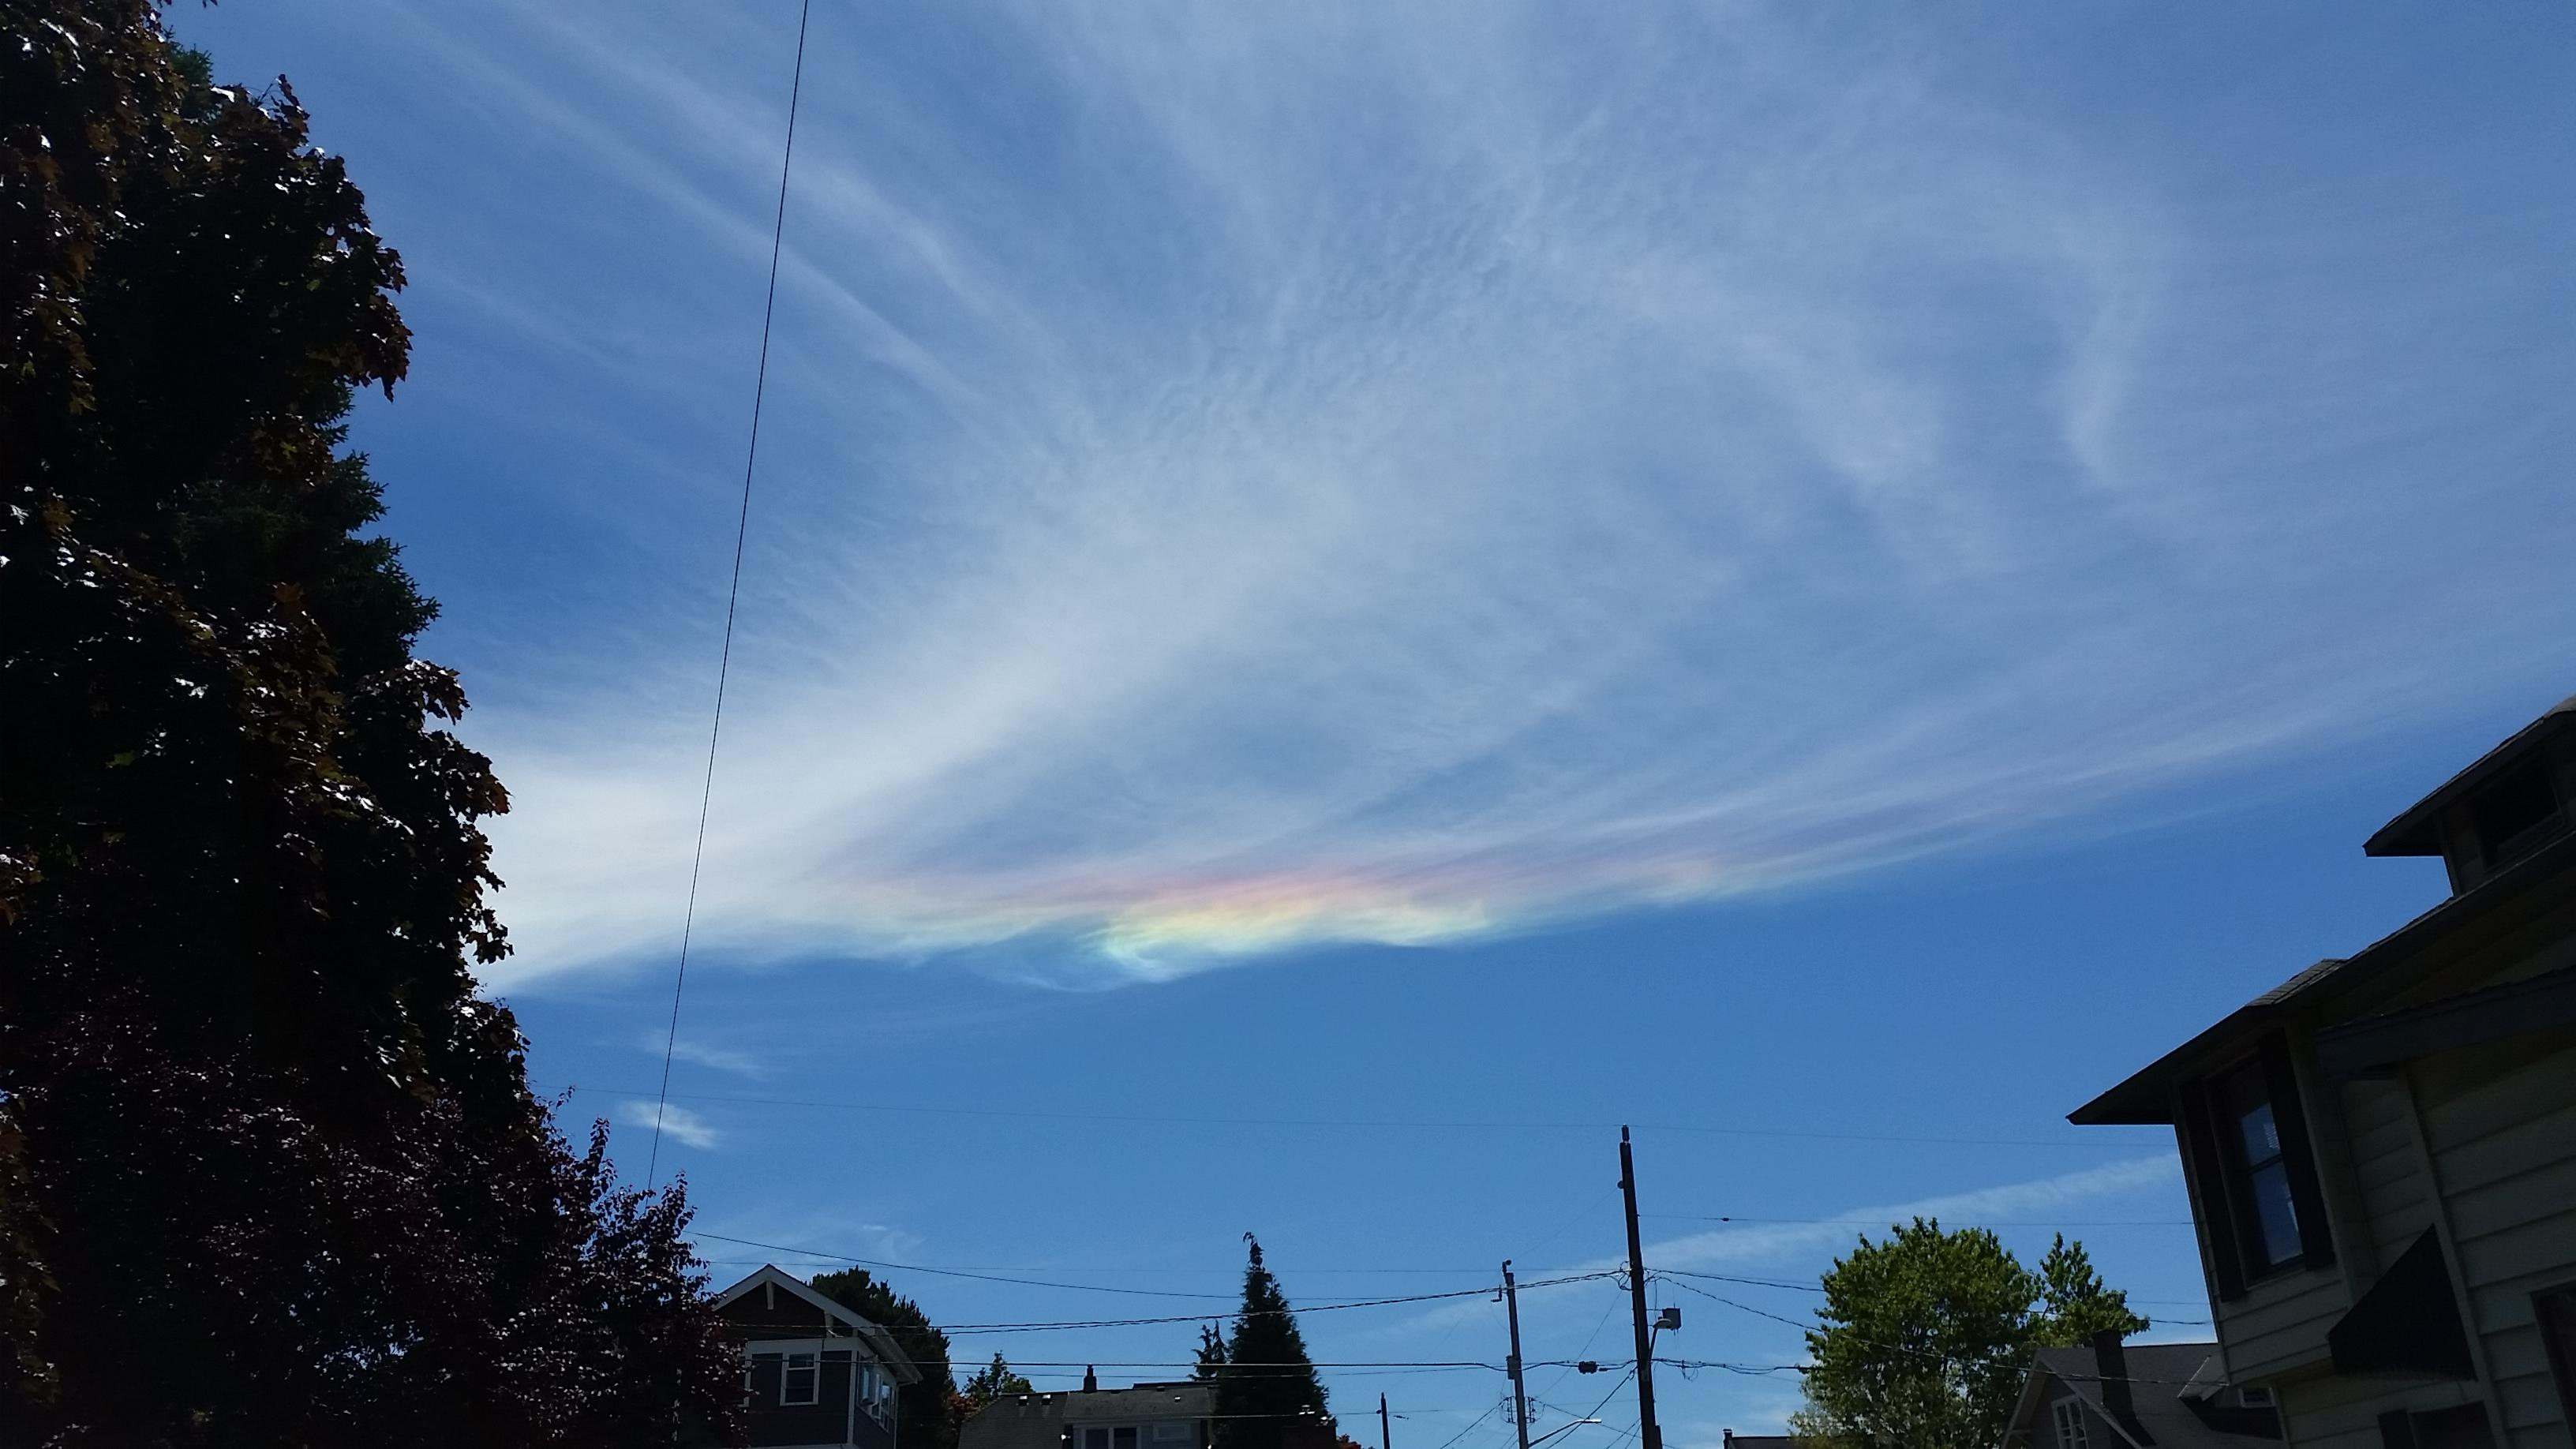 Quot Circumhorizontal Arcs Quot Paint Clouds In The Colors Of The